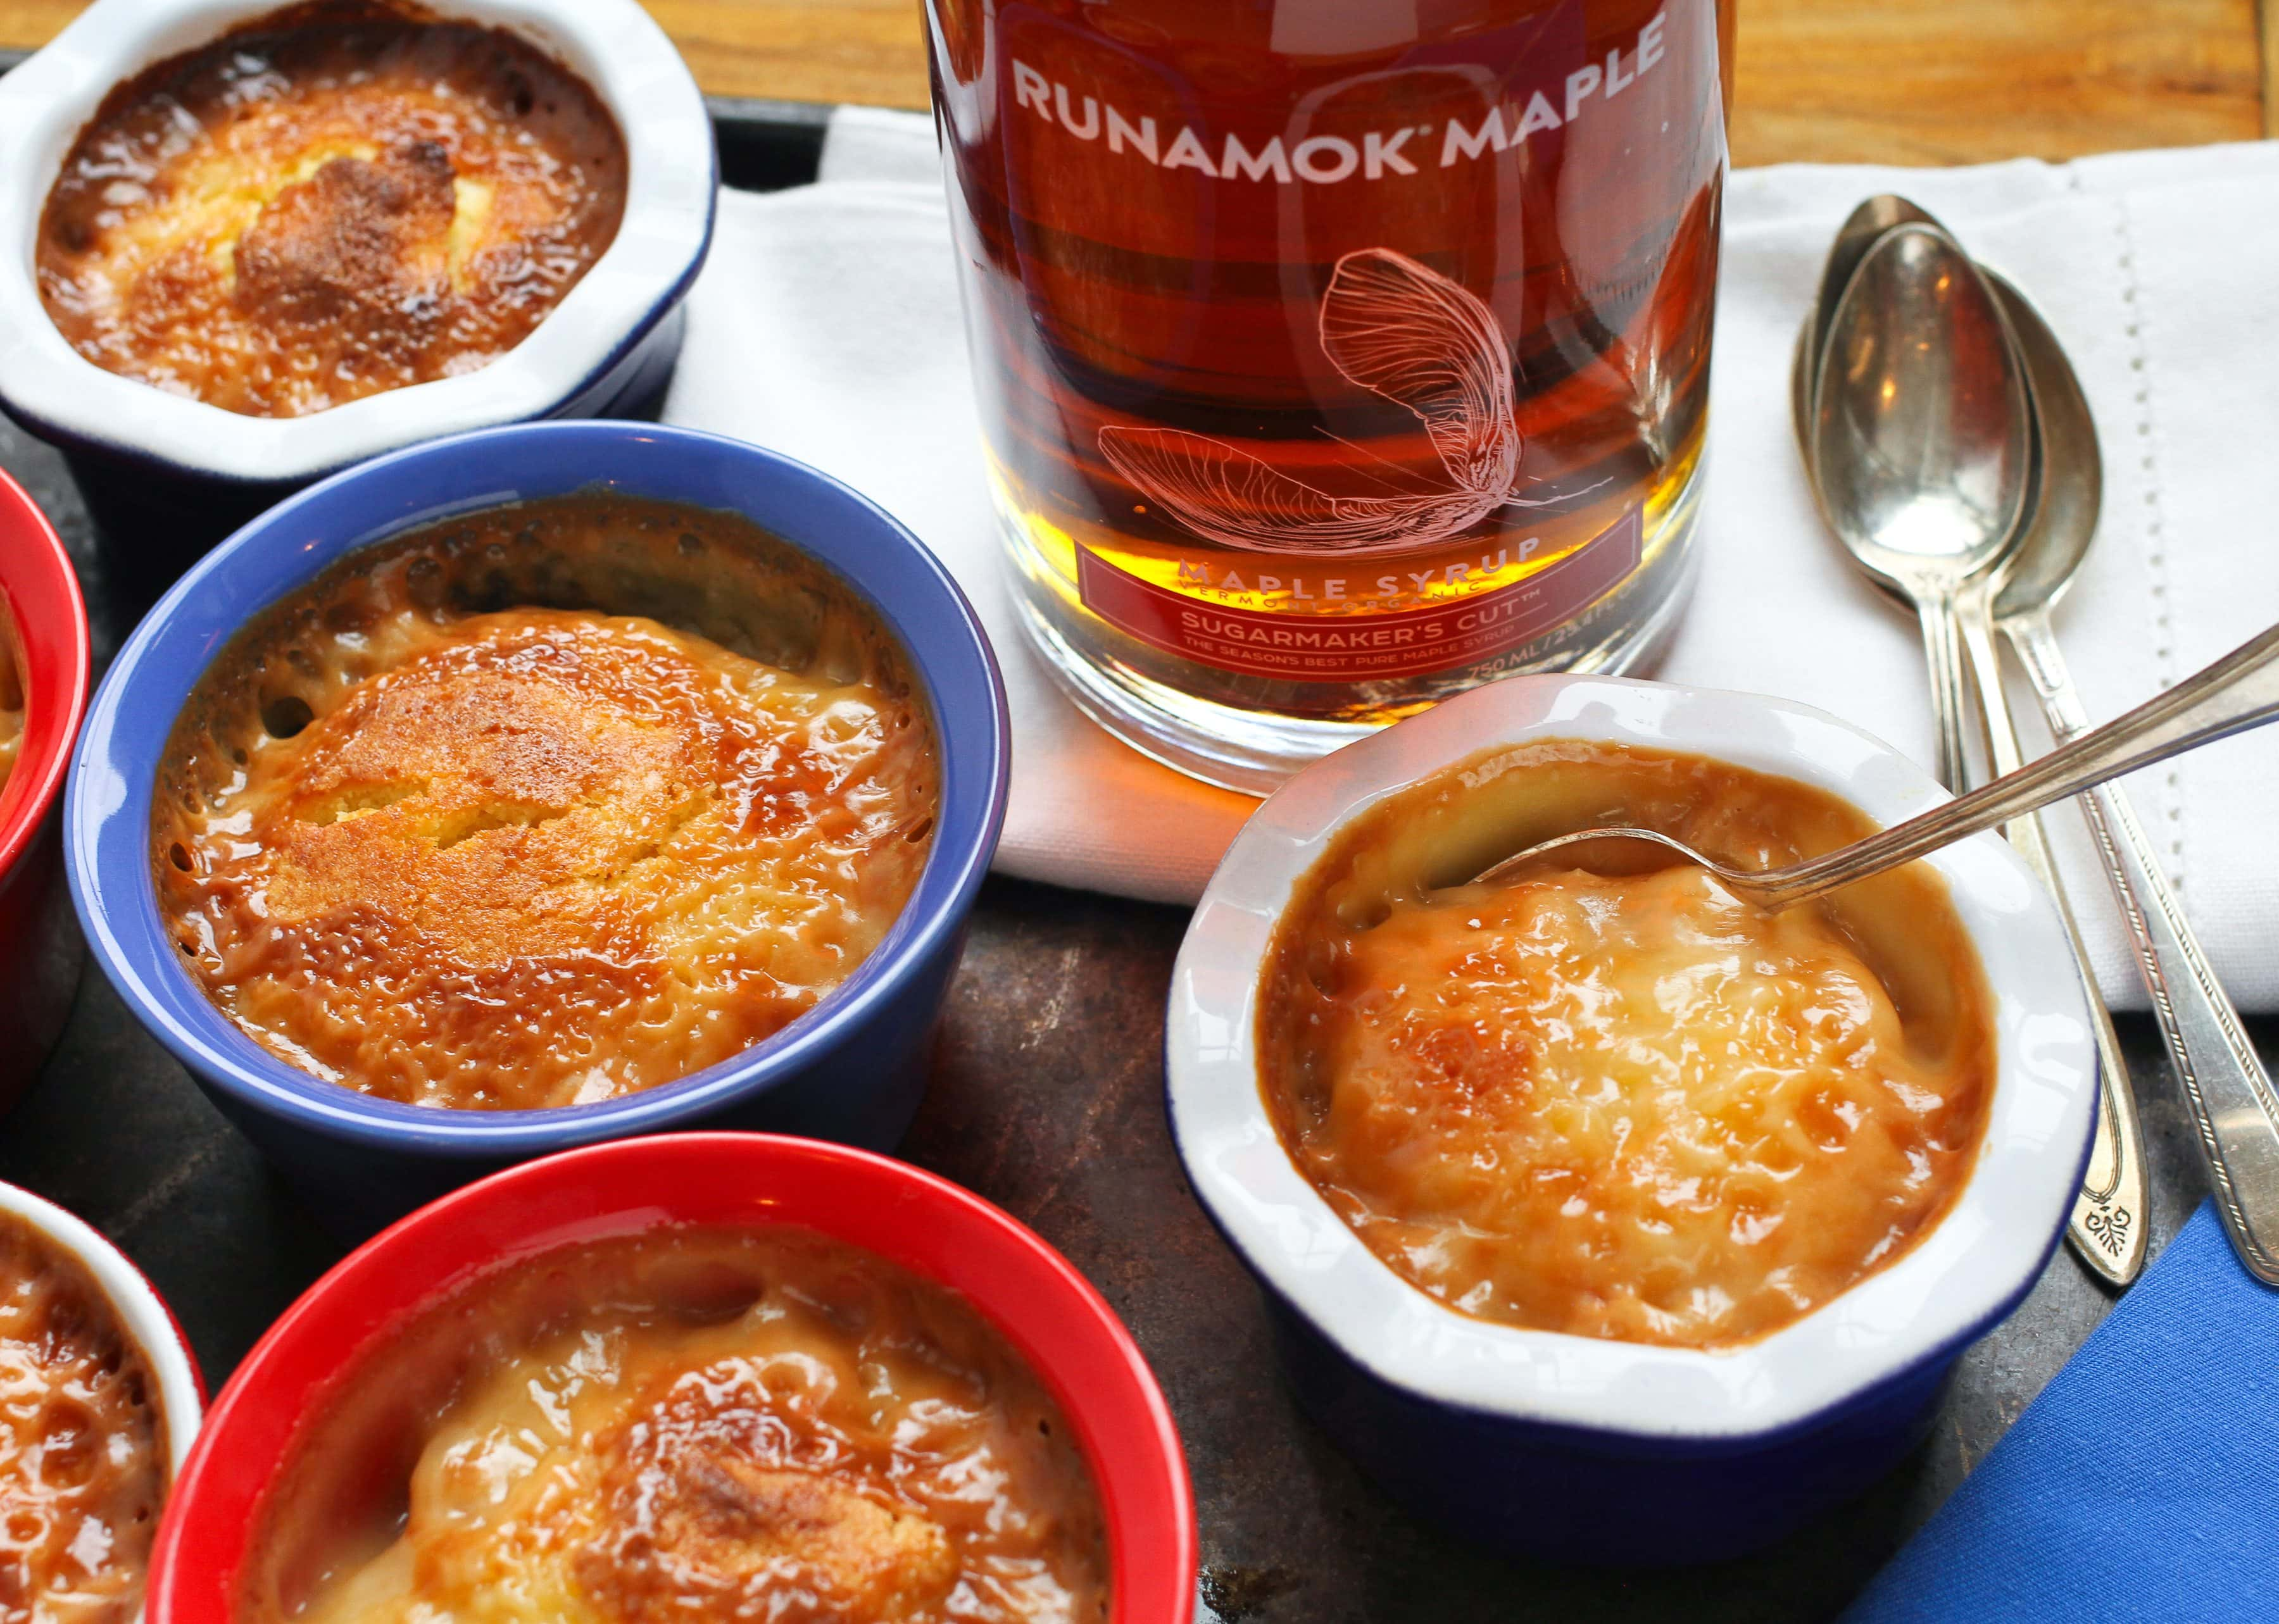 Pudding chomeur with Runamok sugarmaker's cut maple syrup